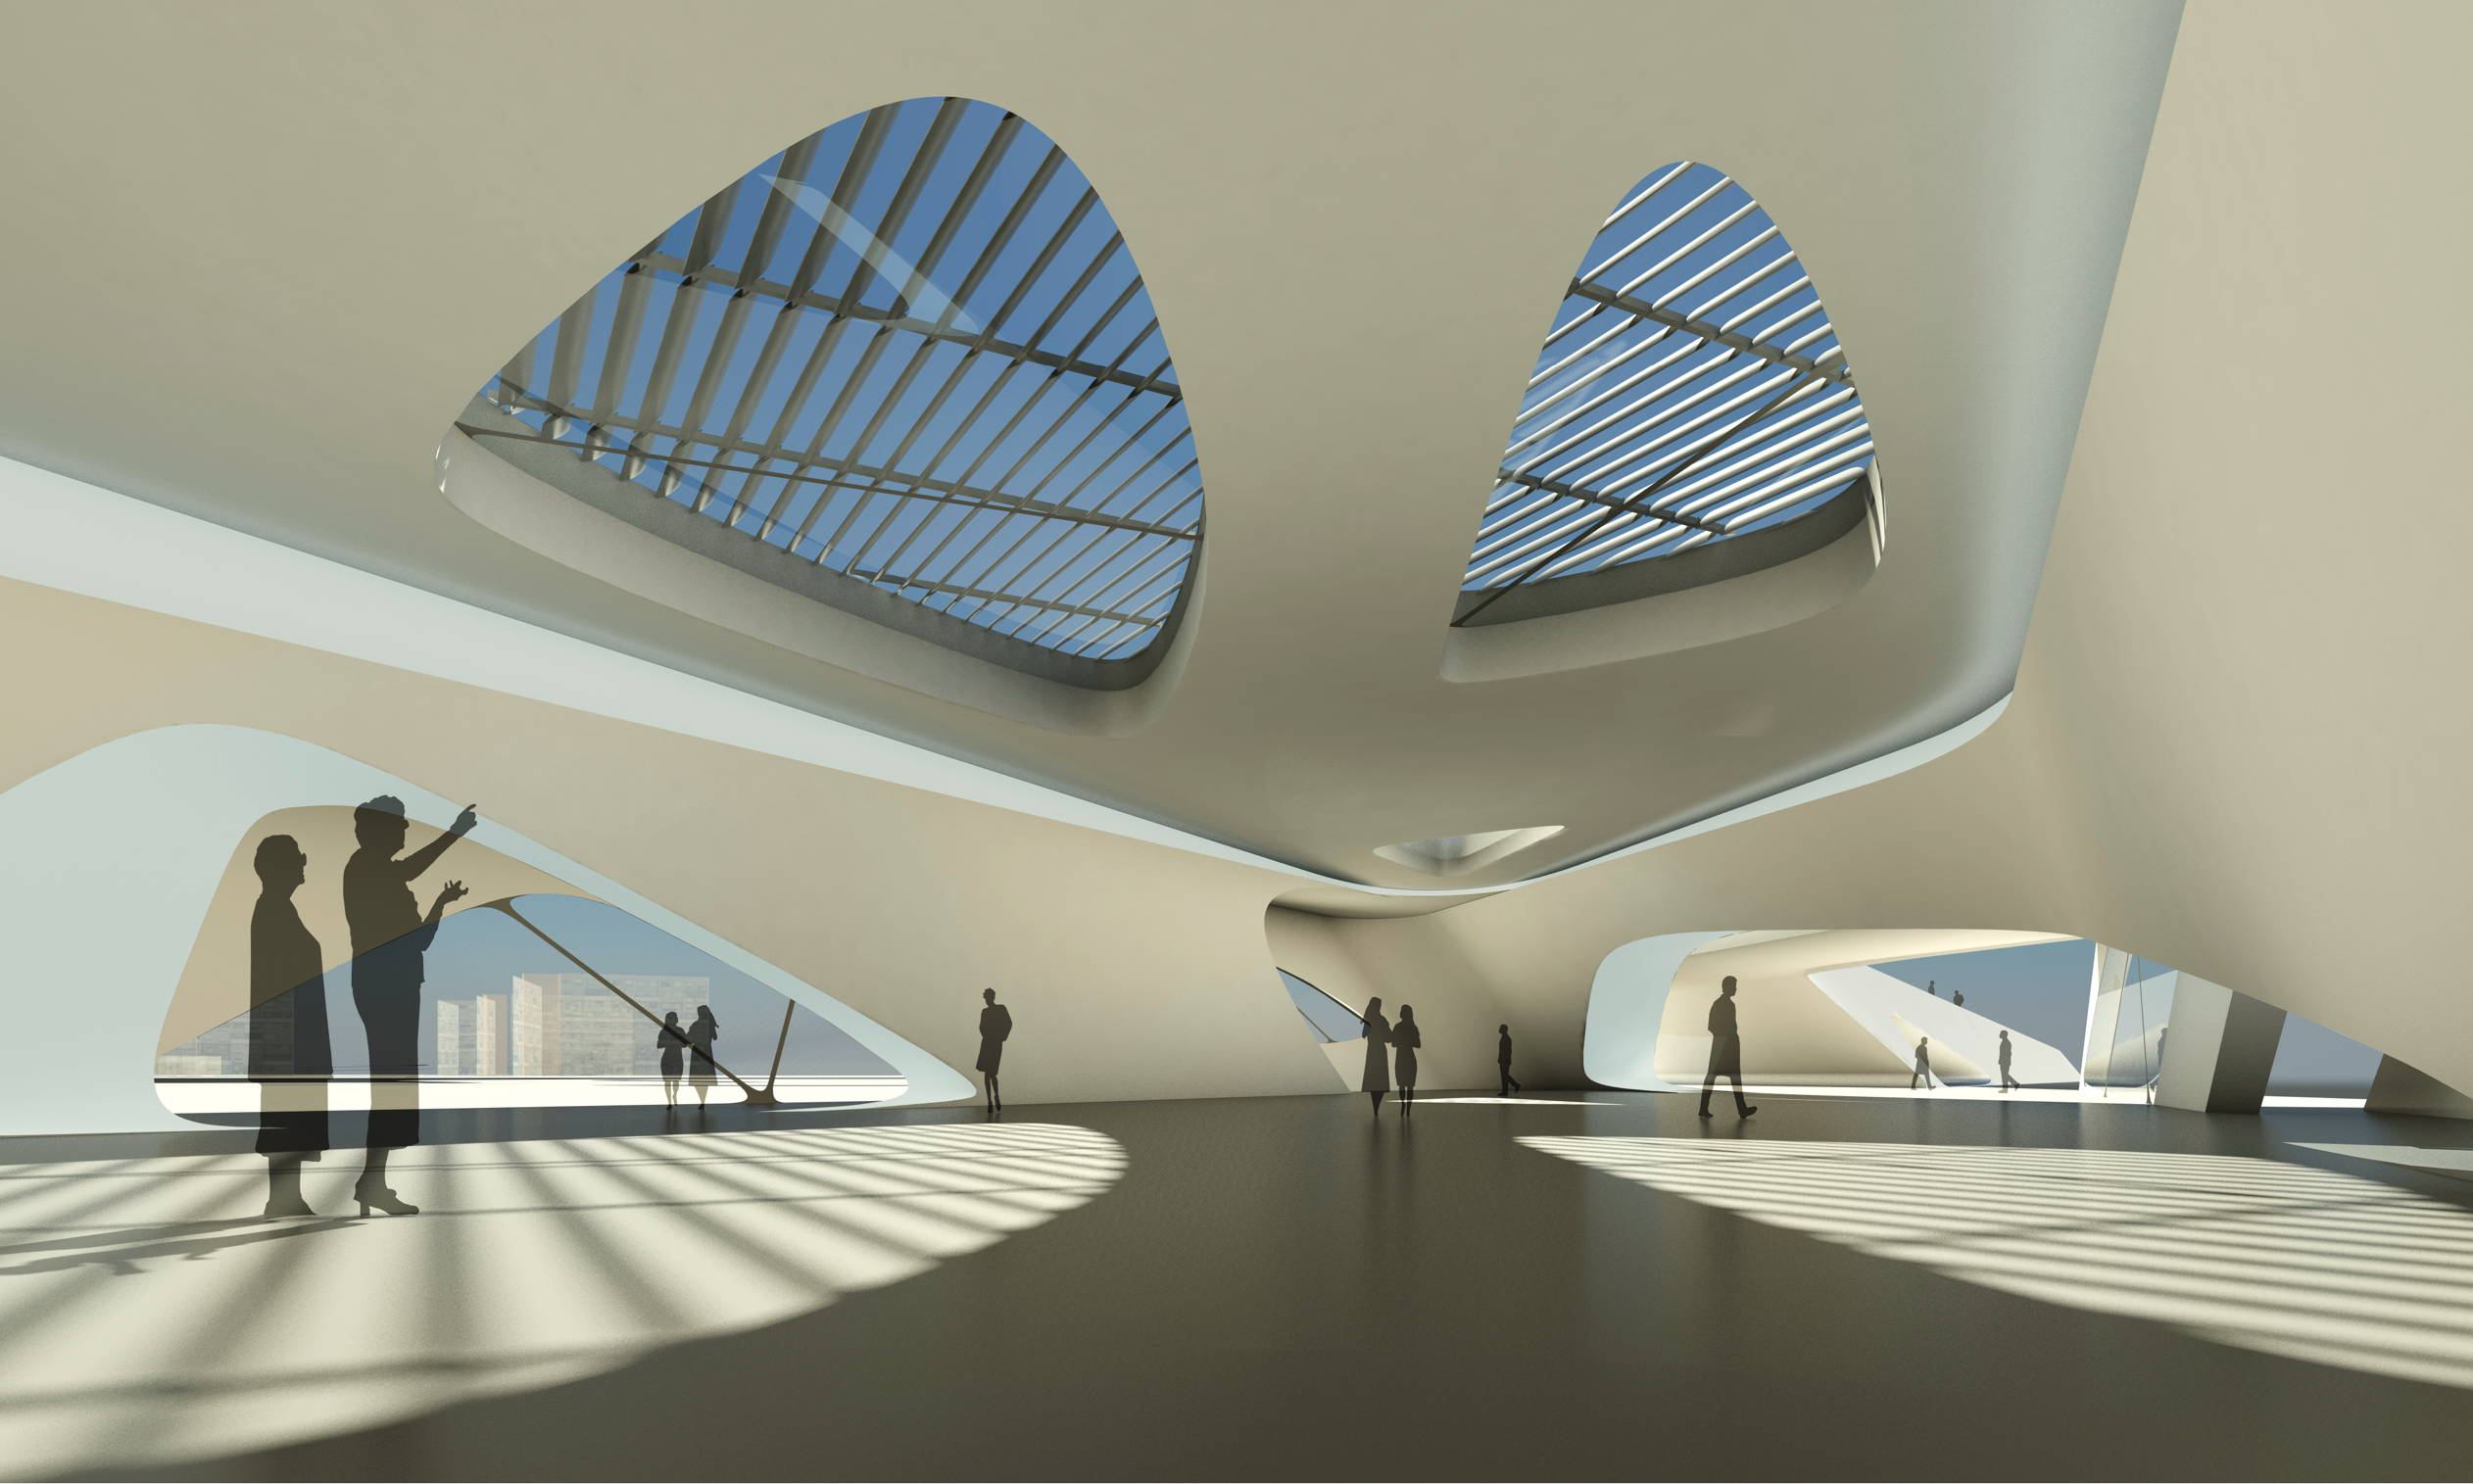 Nuragic And Contemporary Art Museum In Cagliari Italy By Zaha